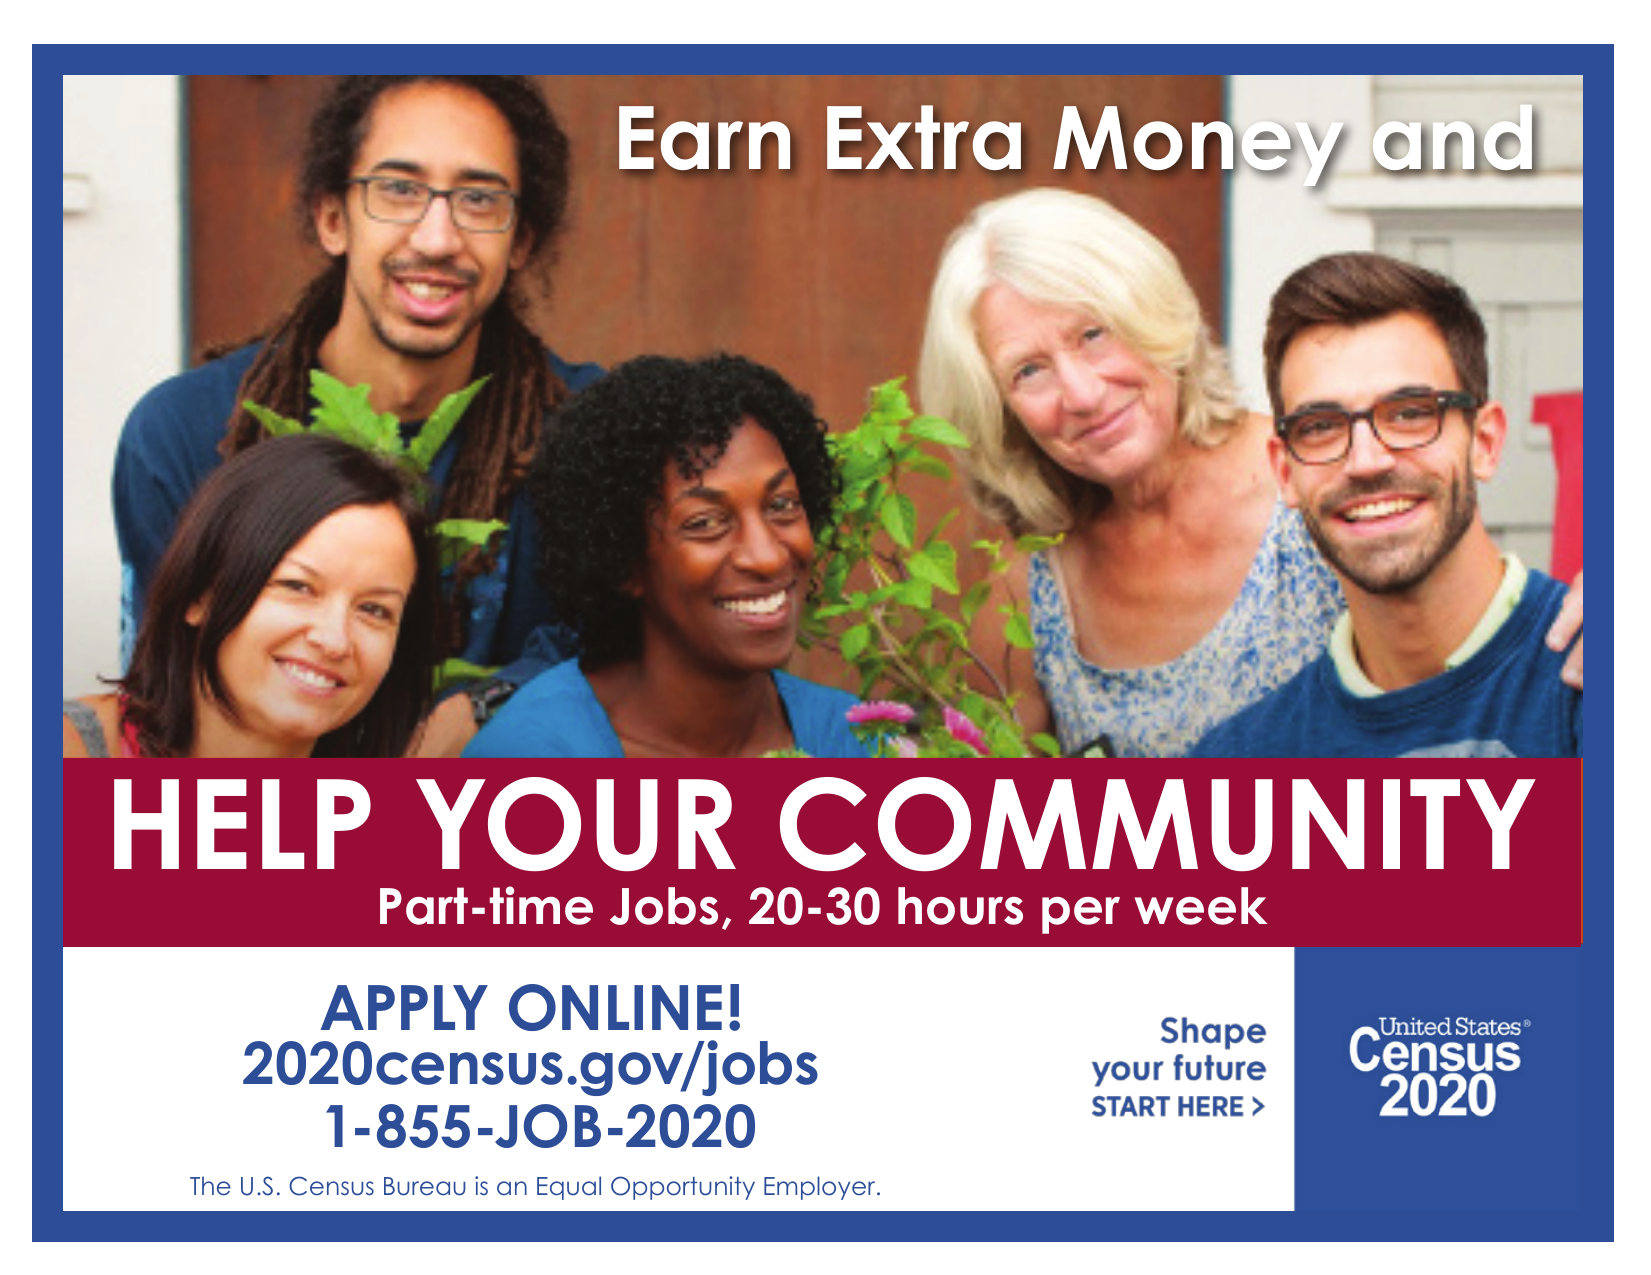 Earn Extra Money because a census taker